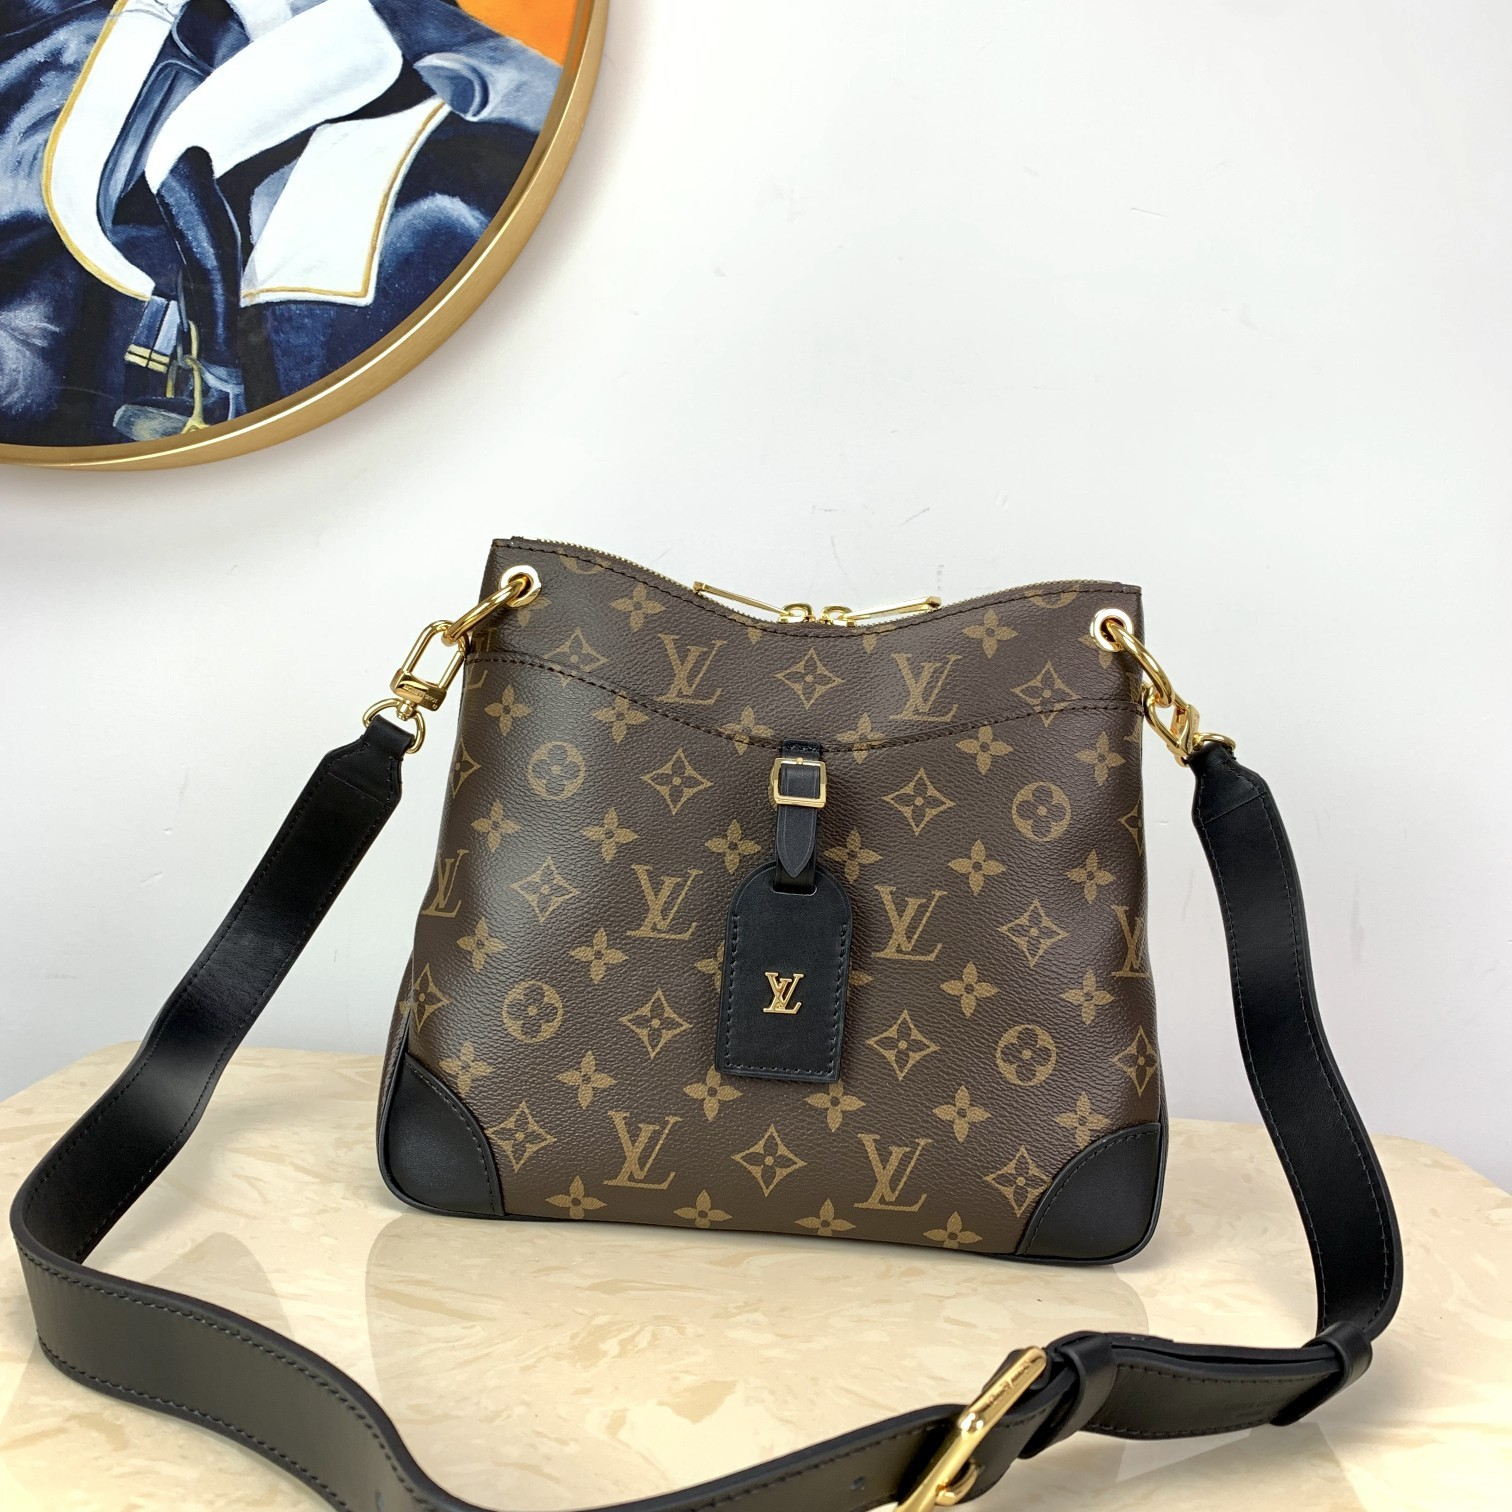 Perfect Replica Louis Vuitton M45355 Odeon MM Stylish and Functional Shoulder Bag Monogram Coated Canvas Black